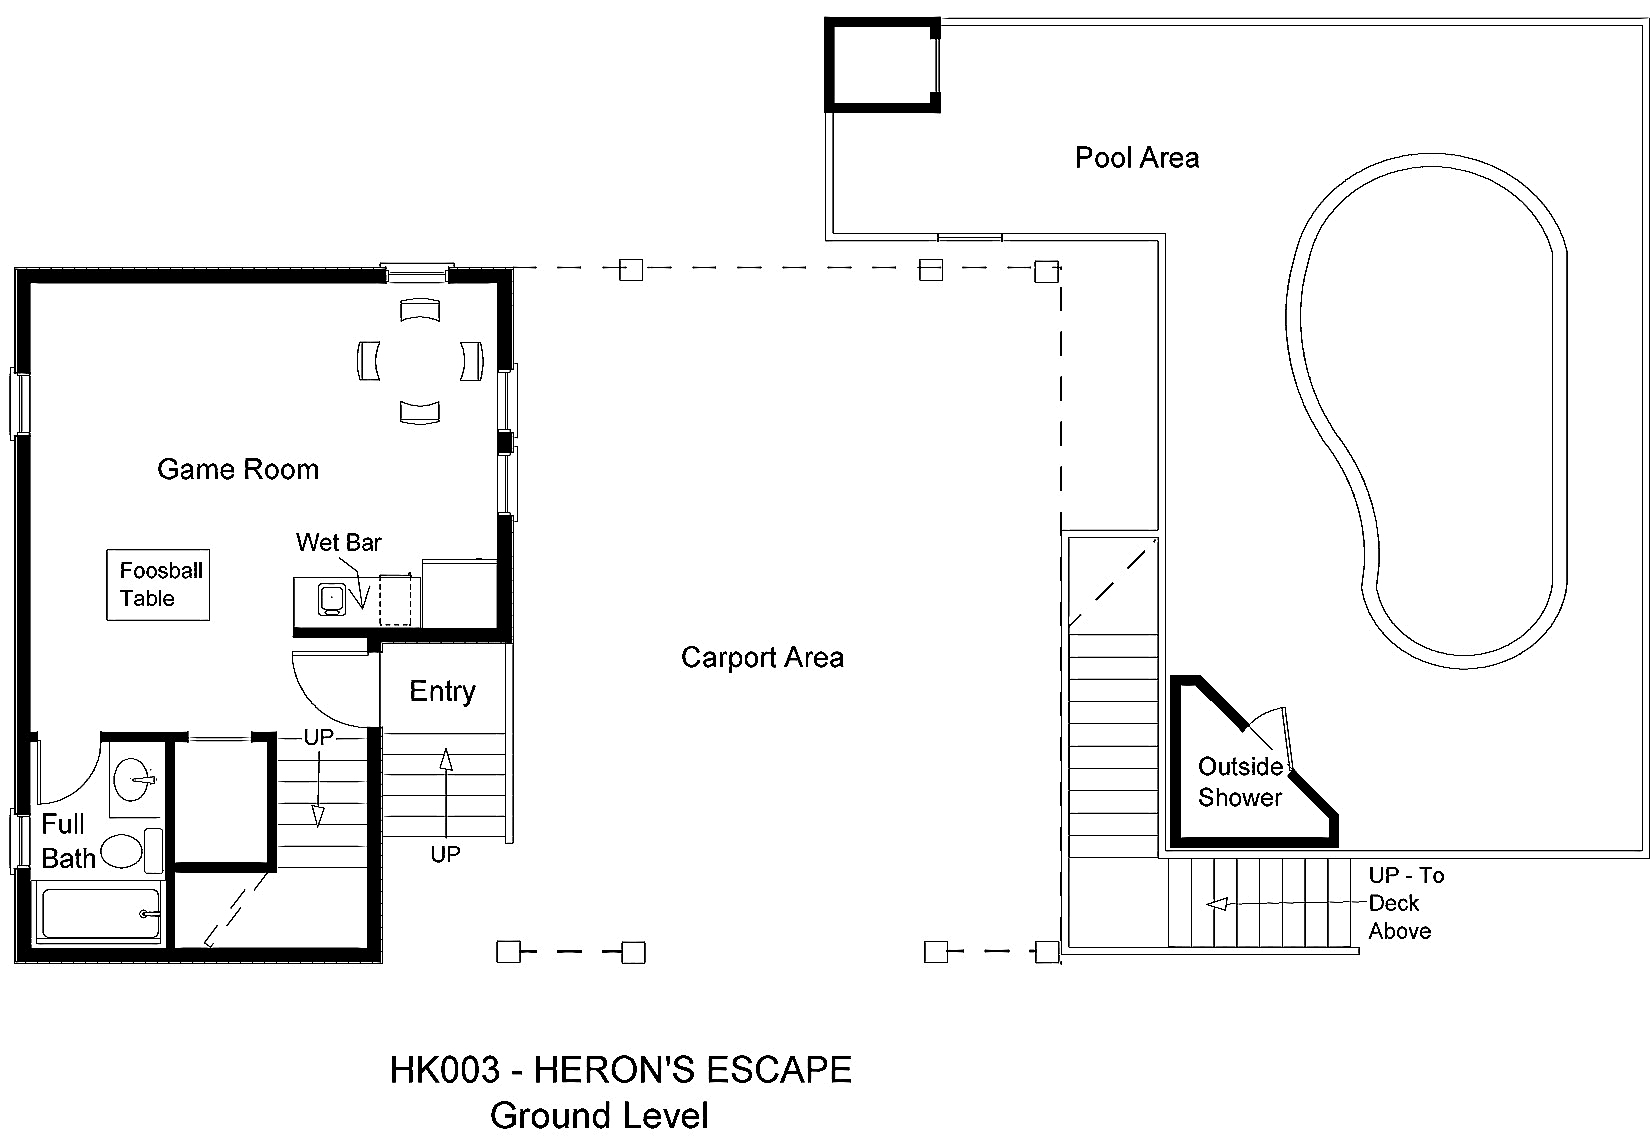 HK003 Heron's Escape - Floorplan Ground Level